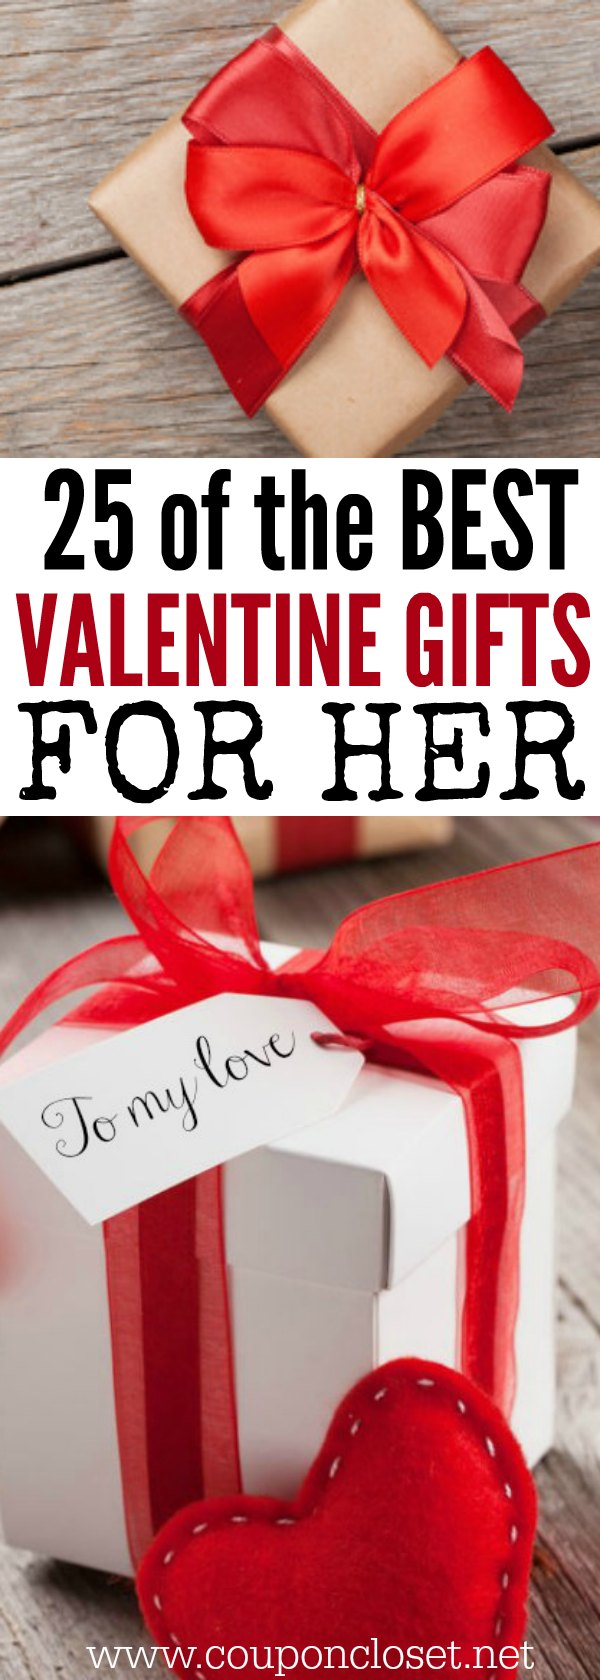 Valentineu0027s Day Gifts For Her   Here Are 25 Great Valentines Day Gift Ideas  That She